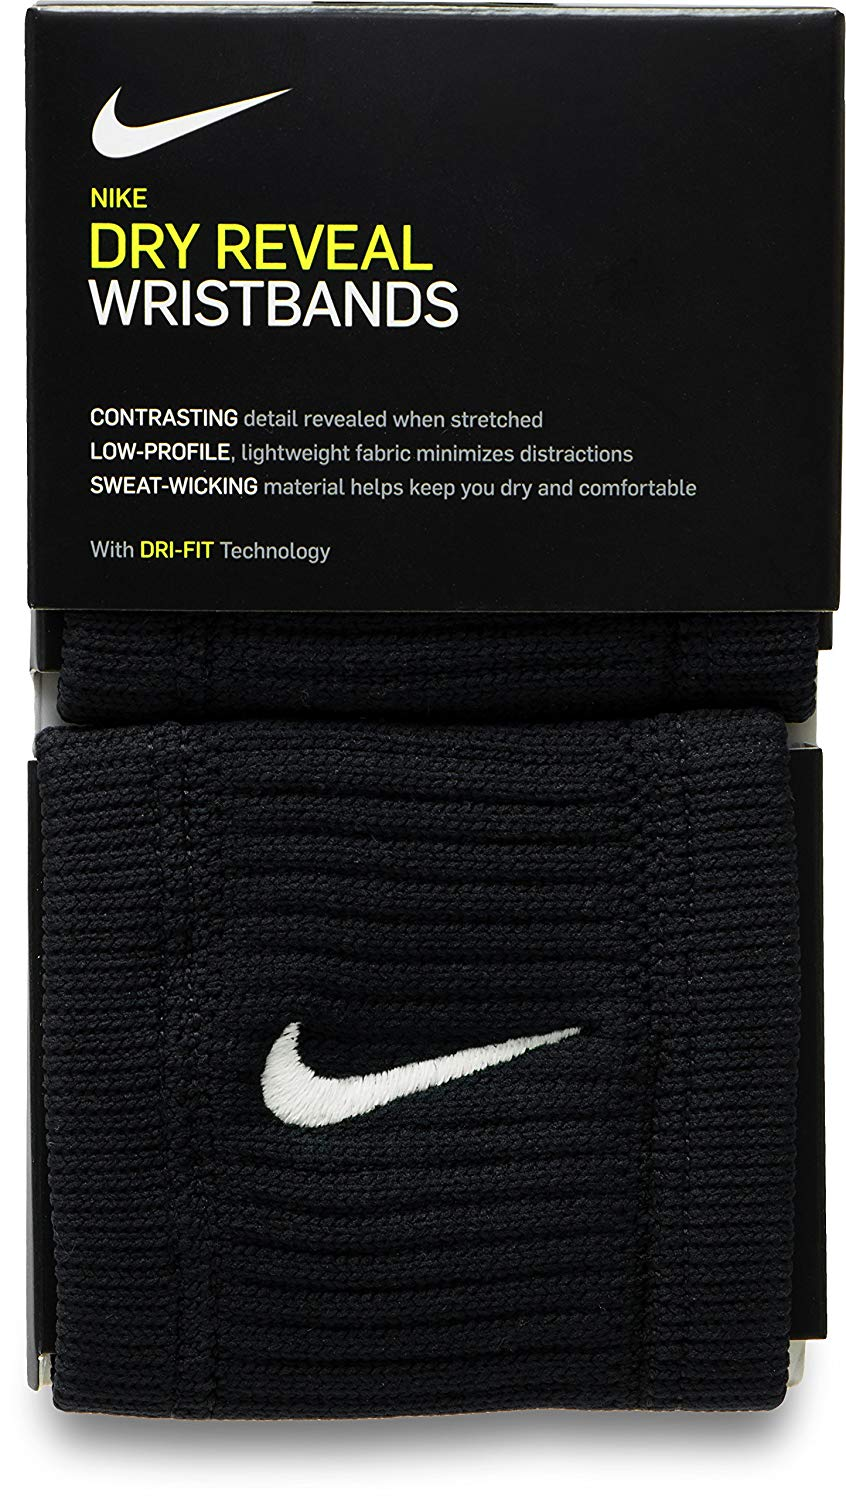 nike dri fit basketball wristband image